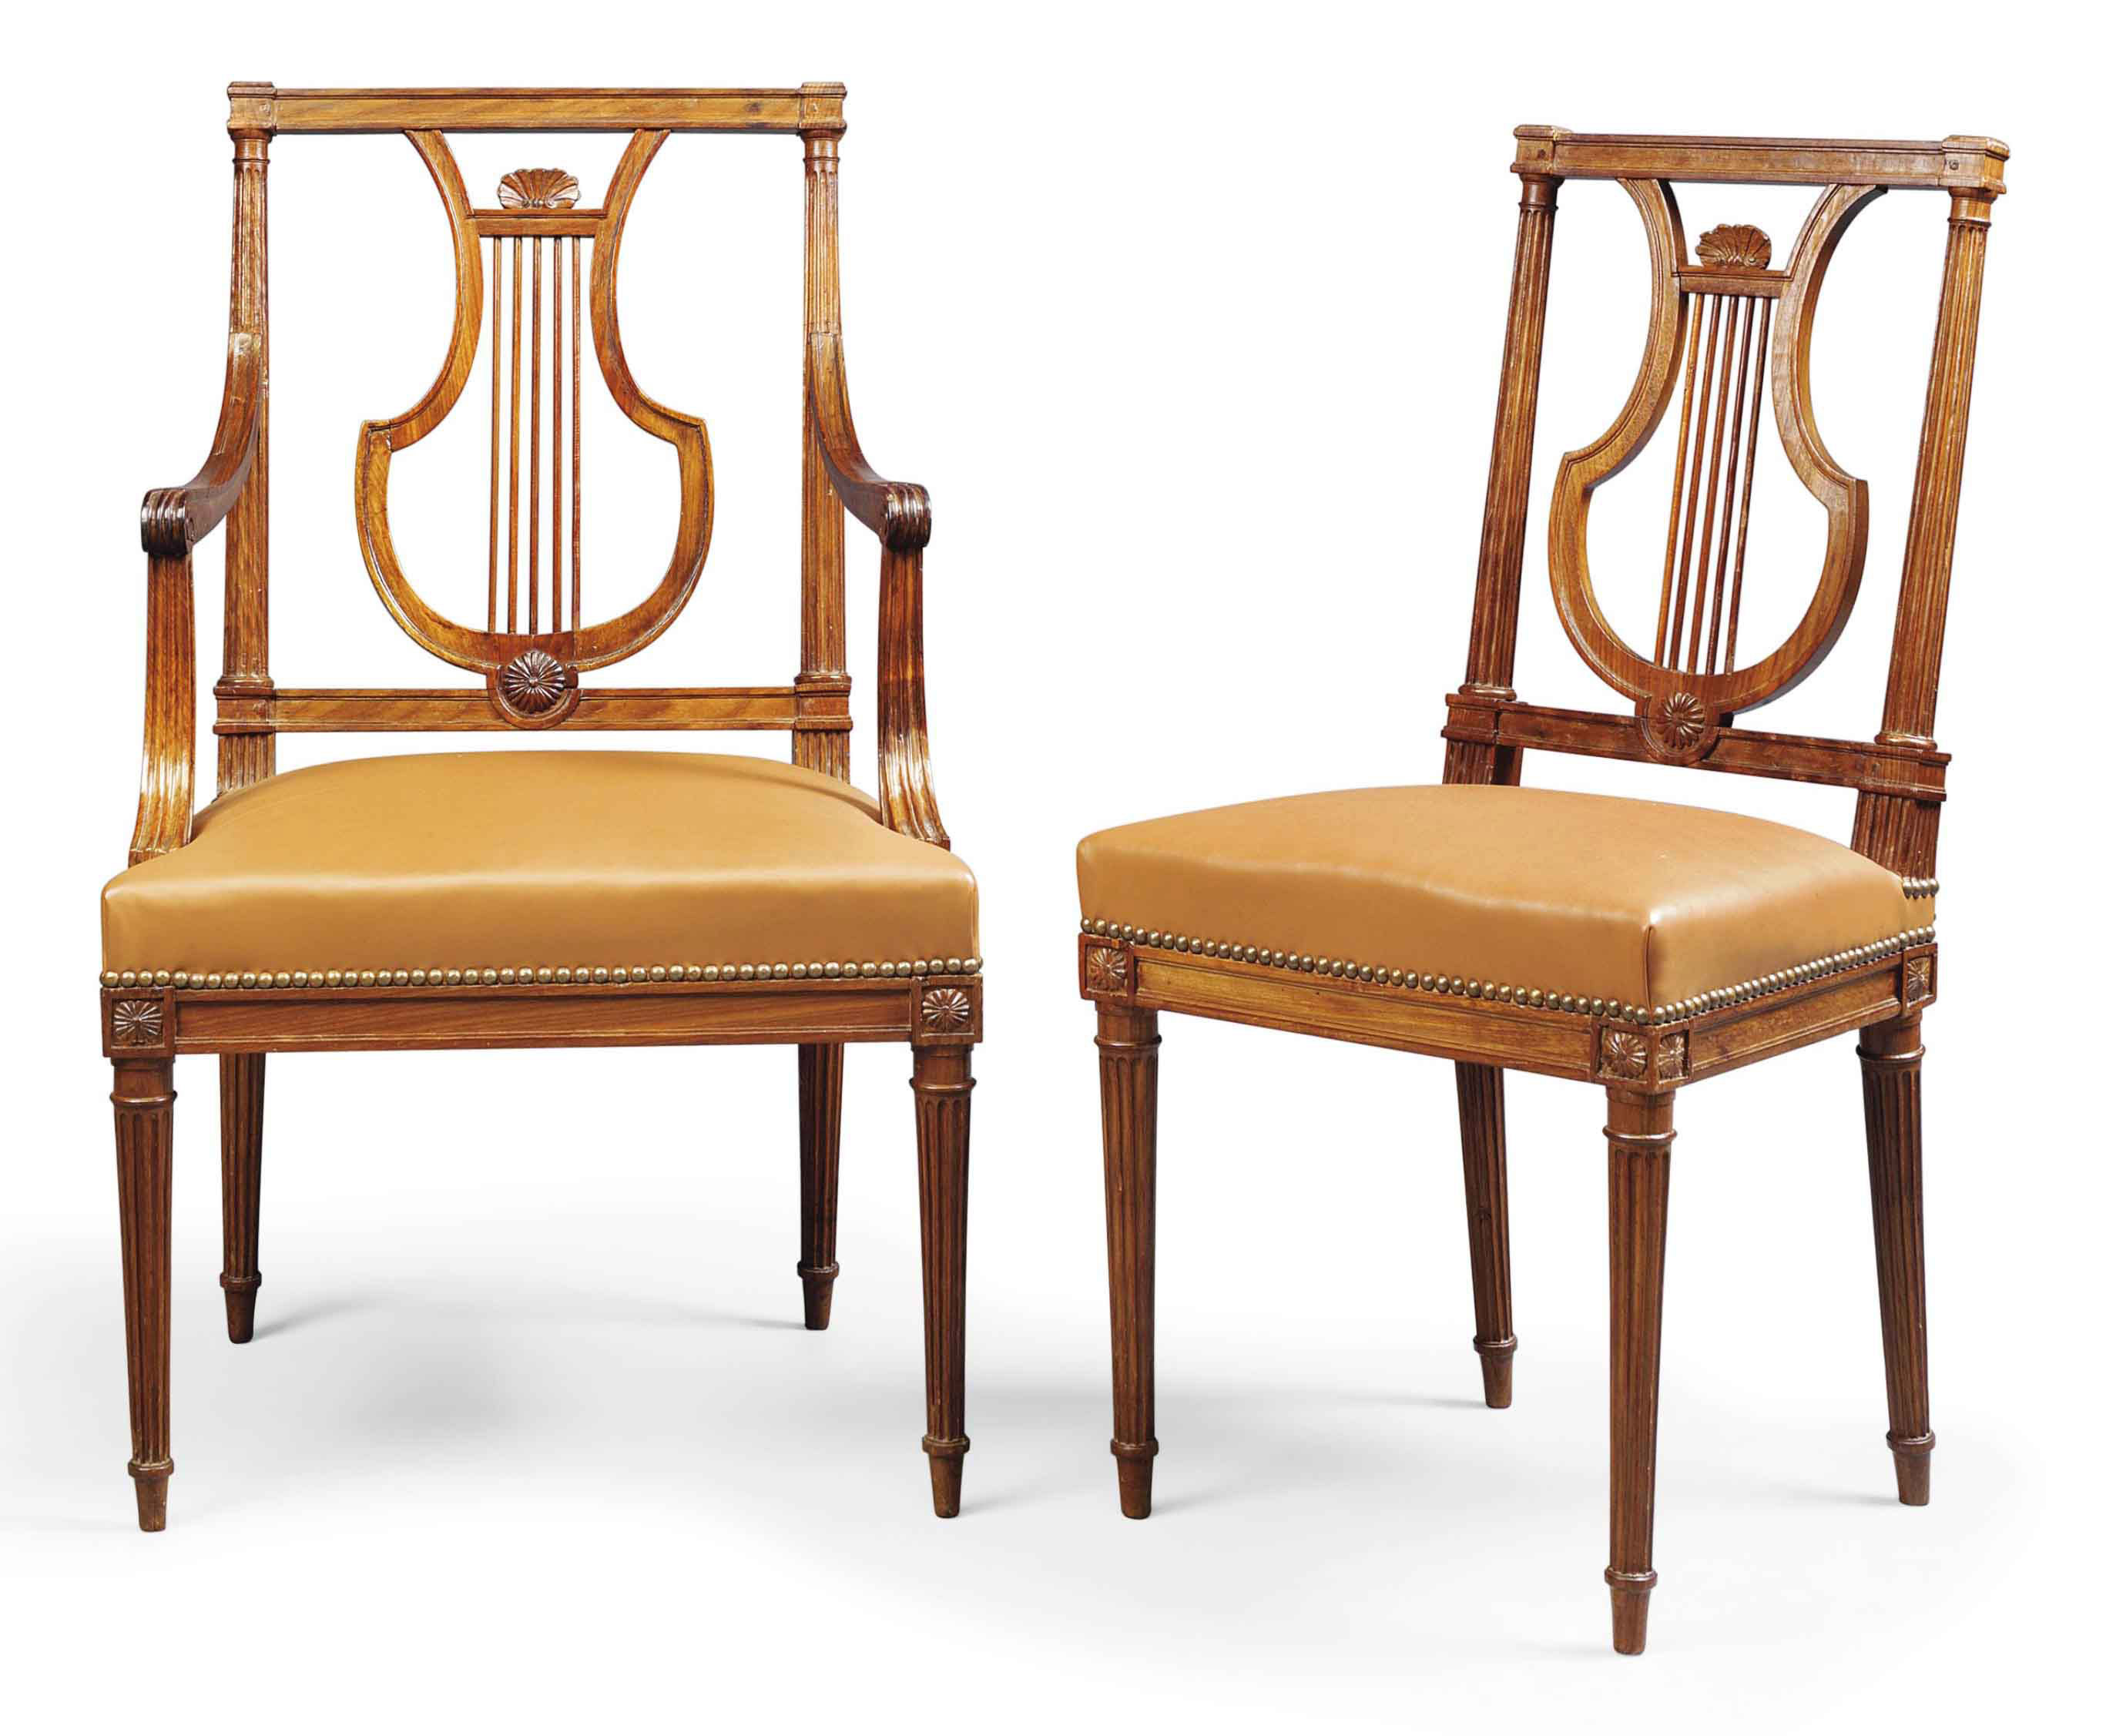 A SET OF TEN LOUIS XVI MAHOGANY DINING-CHAIRS